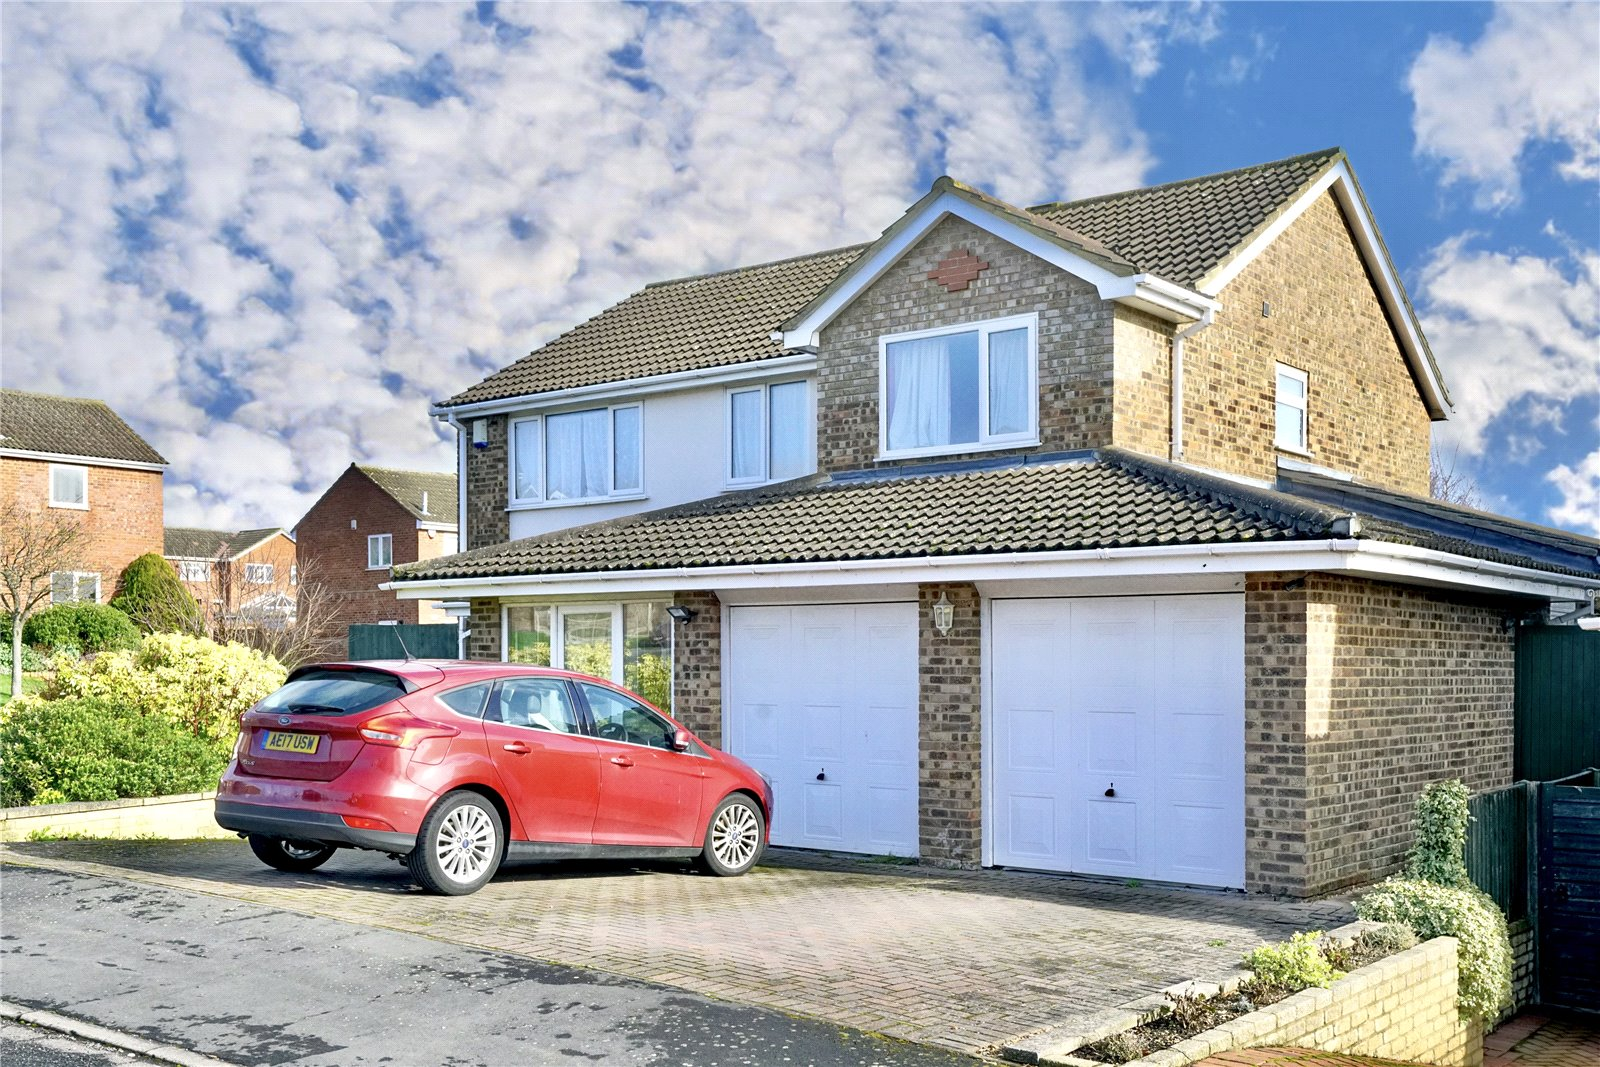 4 bed house for sale in Lowry Road, Eaton Ford  - Property Image 1